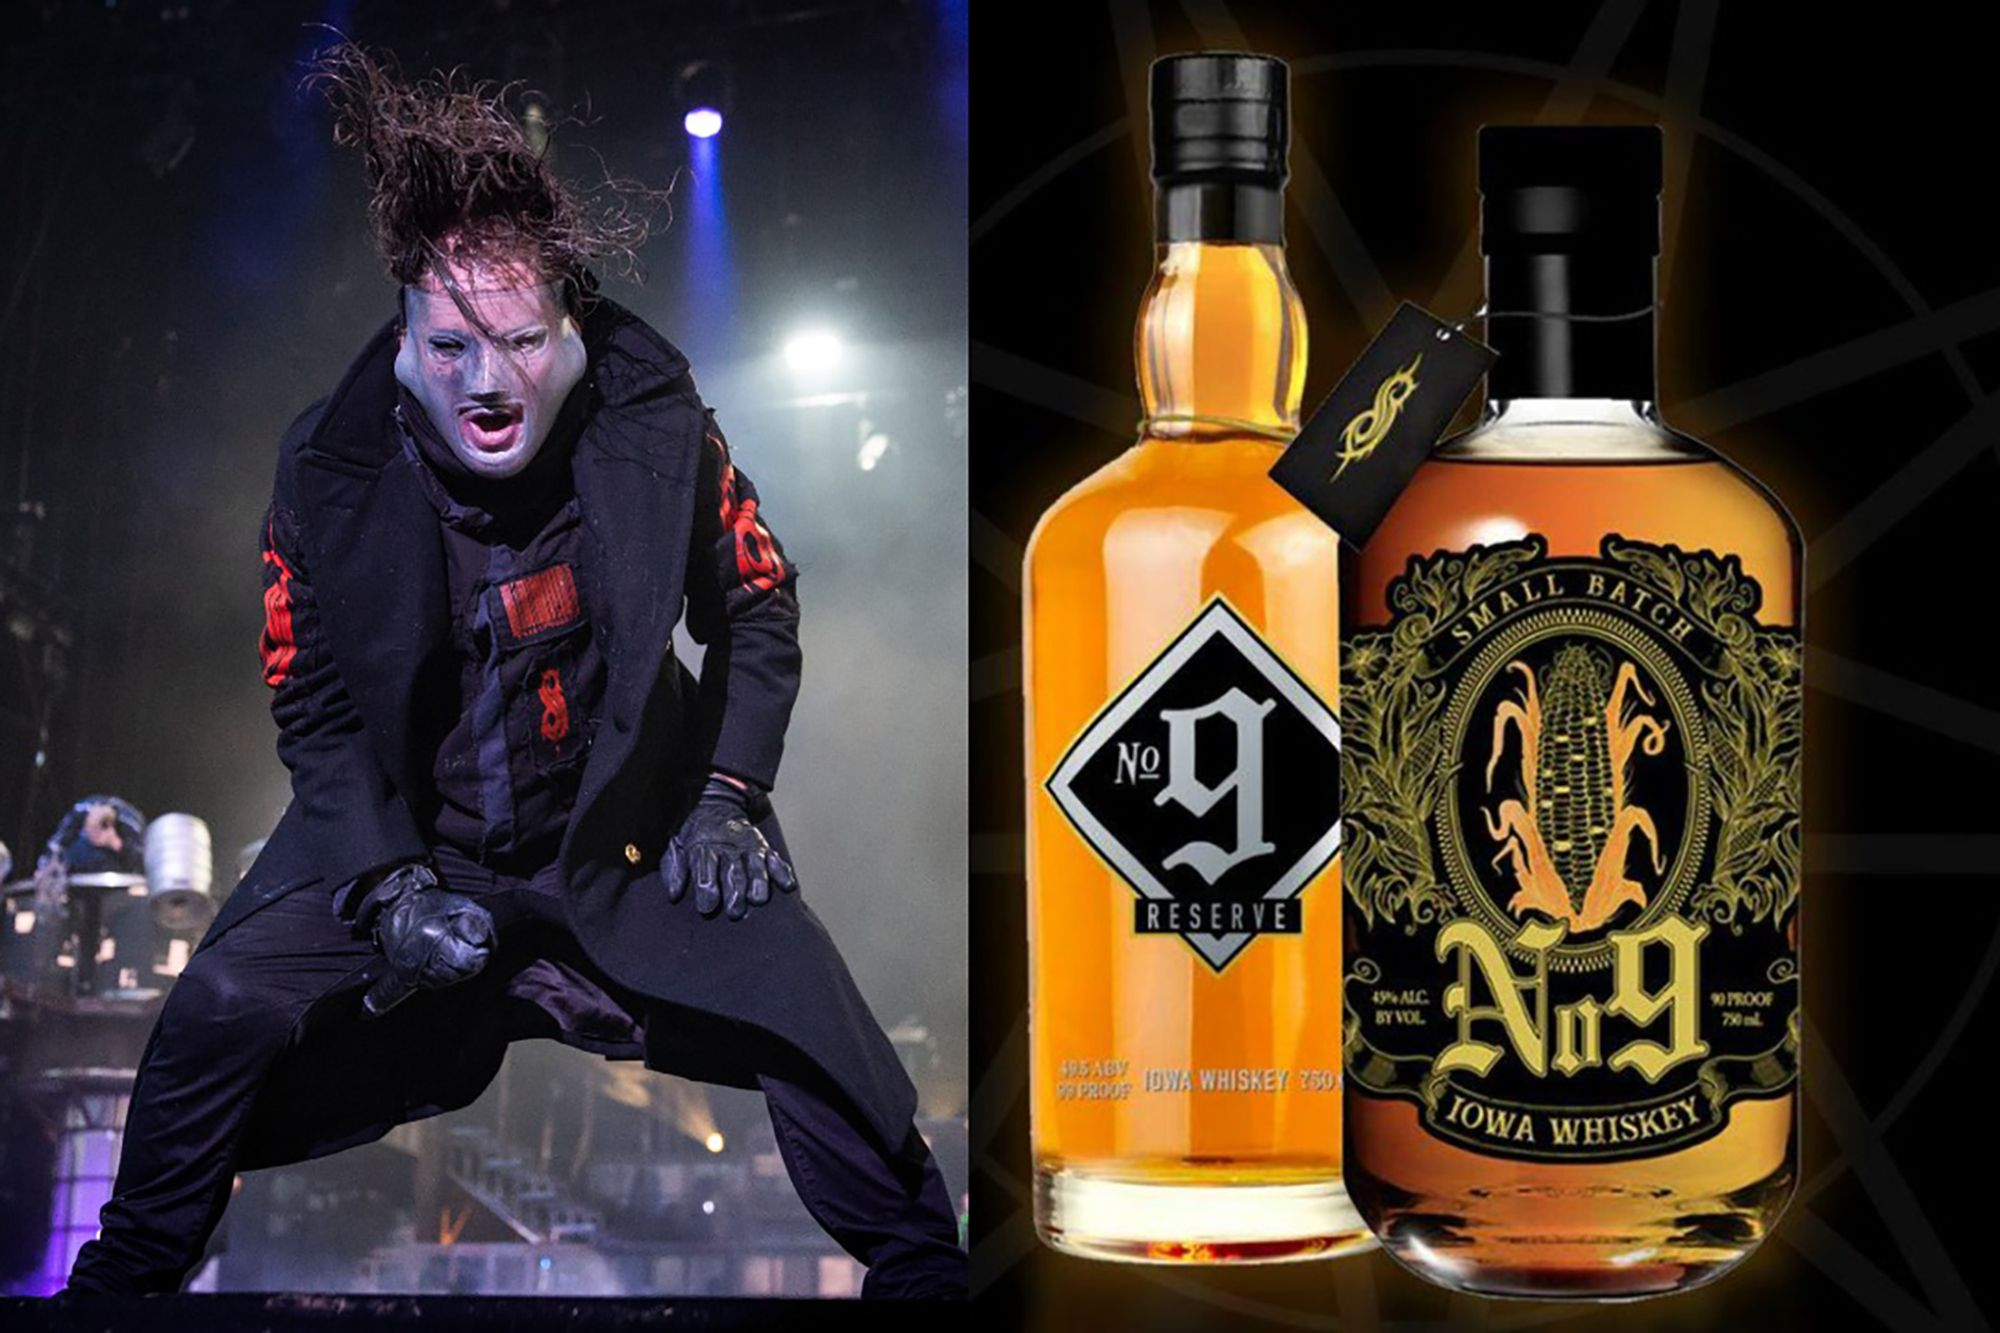 Slipknot's Whiskey Awarded Best Celebrity Whiskey by Forbes photo